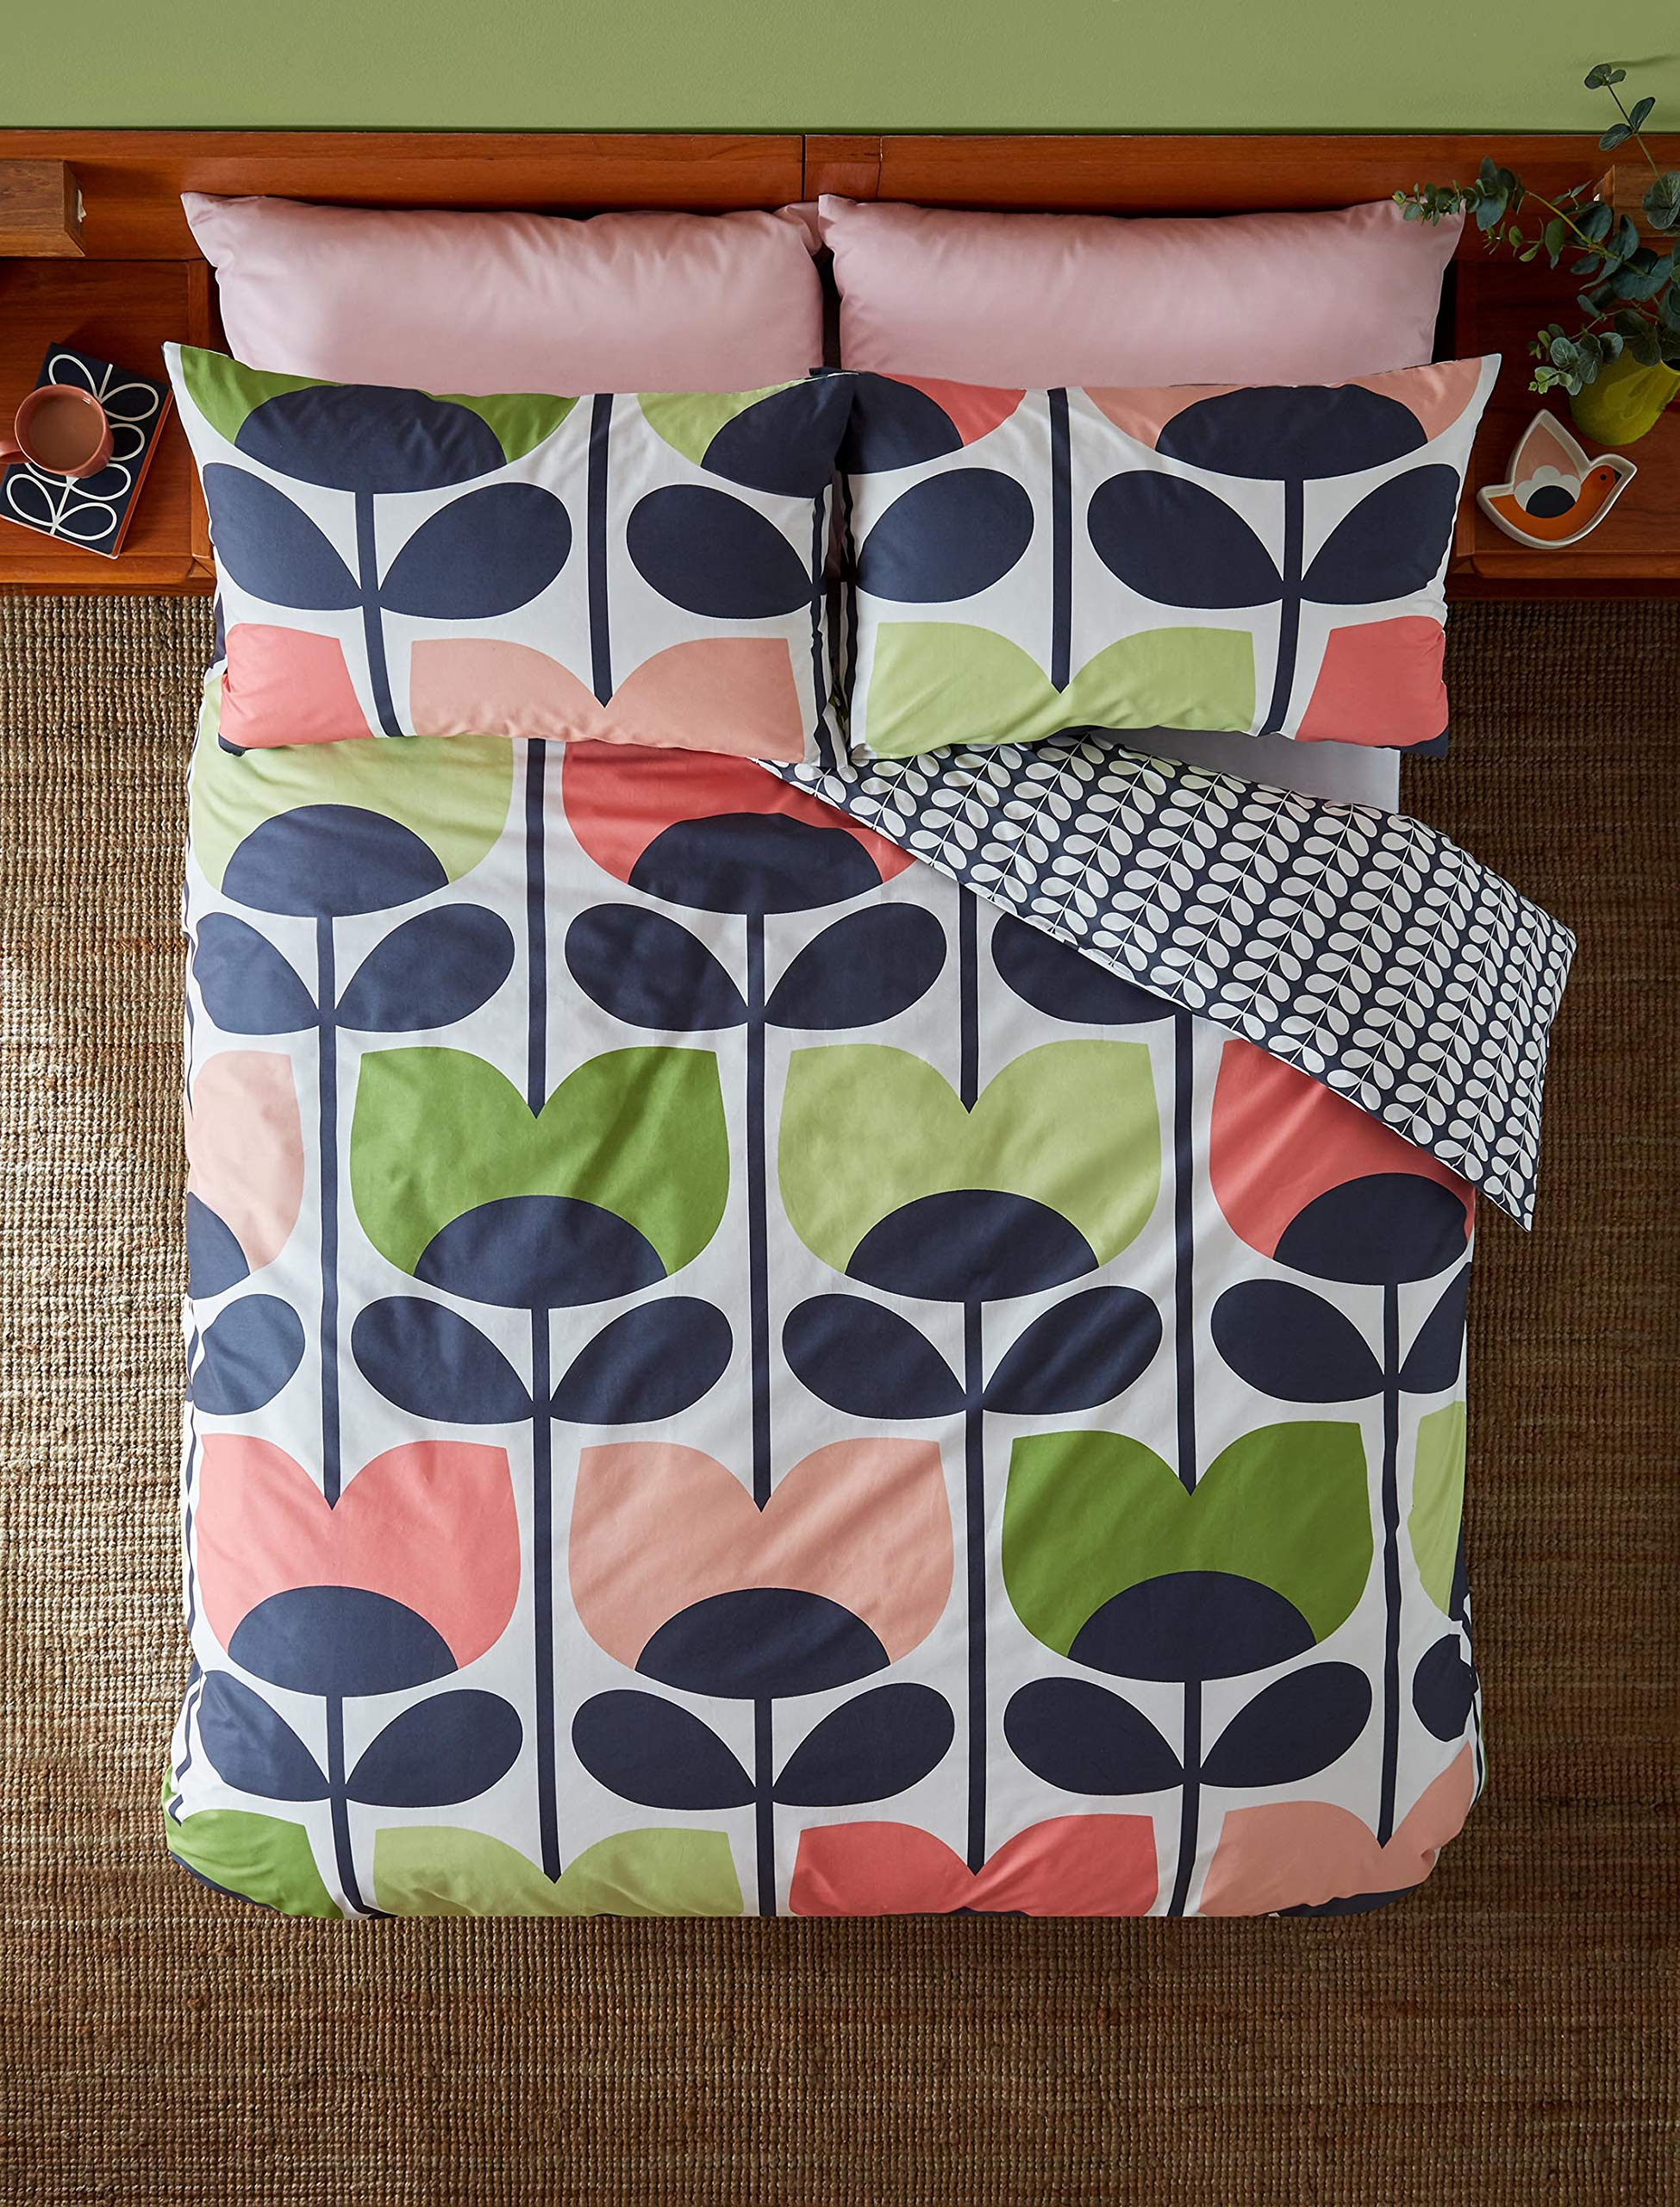 ORLA KIELY CLMBING ROSE PINK 100% COTTON 200TC USA QUEEN SIZE (230CM X 220CM - UK KING SIZE) 3 PIECE BEDDING SET